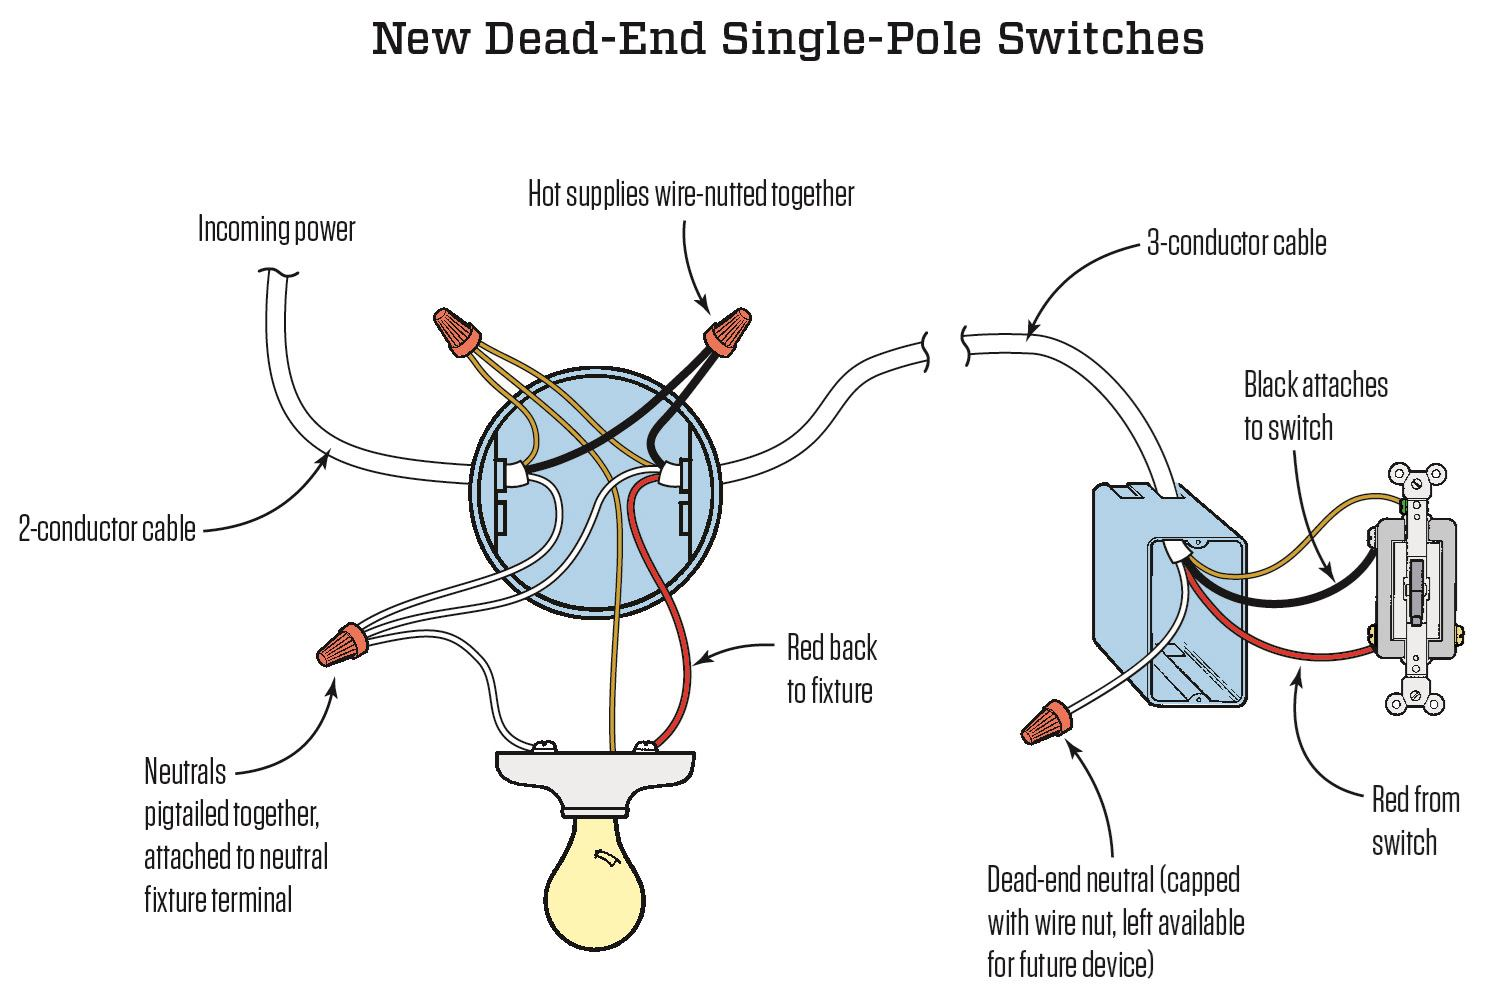 [SCHEMATICS_4US]  Dead-End Single Pole Switches | JLC Online | Wiring Diagram Single Pole Switch To Light Fixture |  | JLC Online